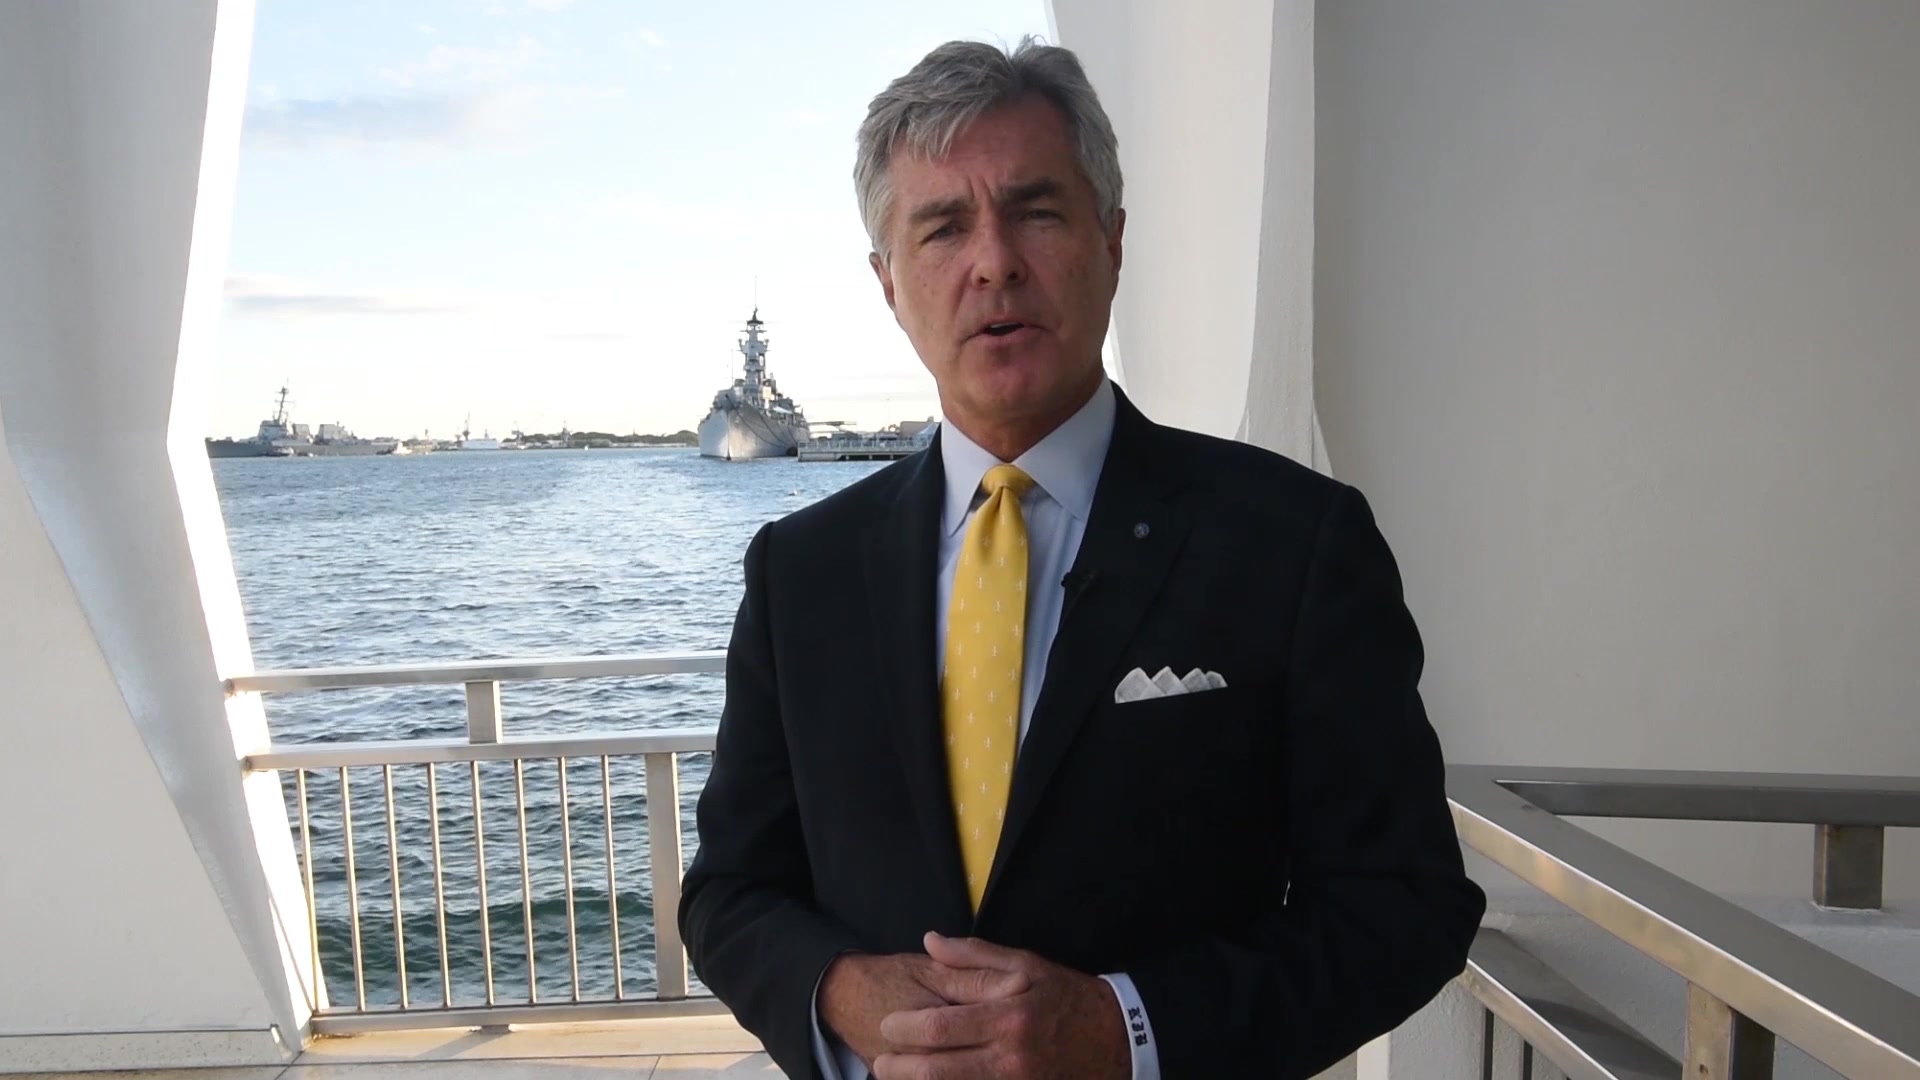 Secretary of the Navy Kenneth J. Braithwaite delivers a birthday message to the Navy. (U.S. Navy video by Mass Communication Specialist 2nd Class Alexander C. Kubitza/Released)